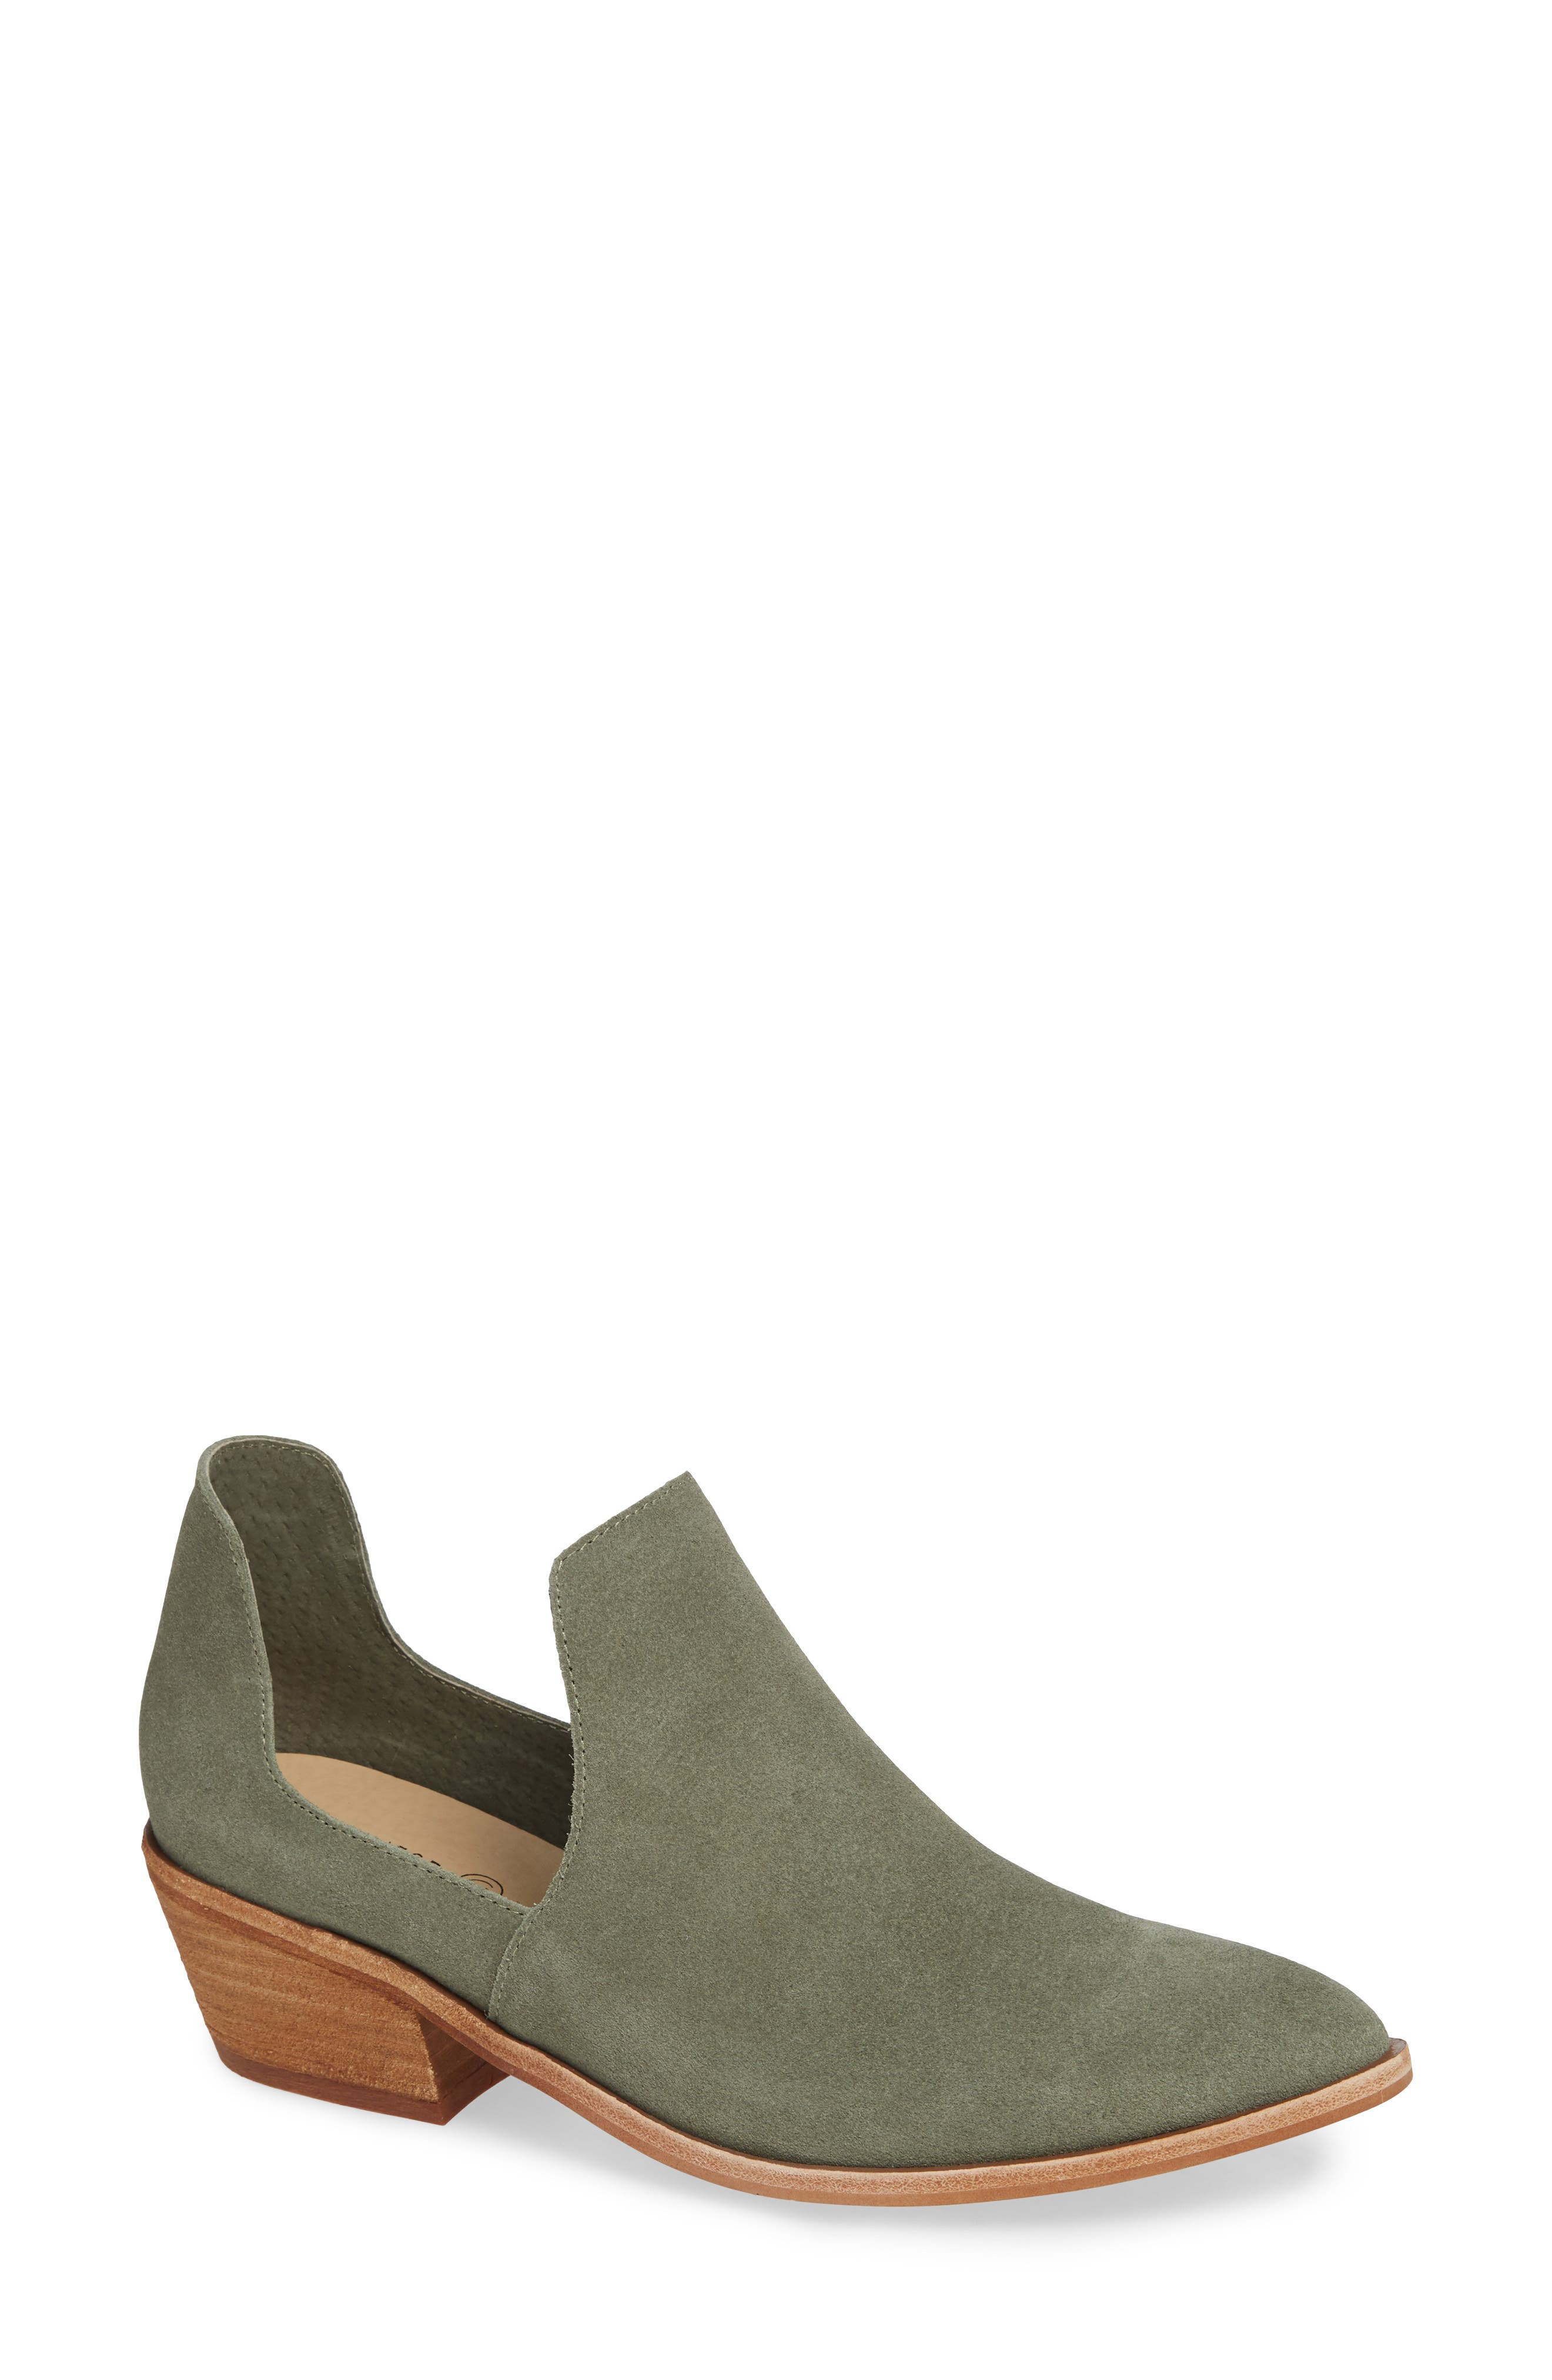 Chinese Laundry Focus Open Sided Bootie- Green